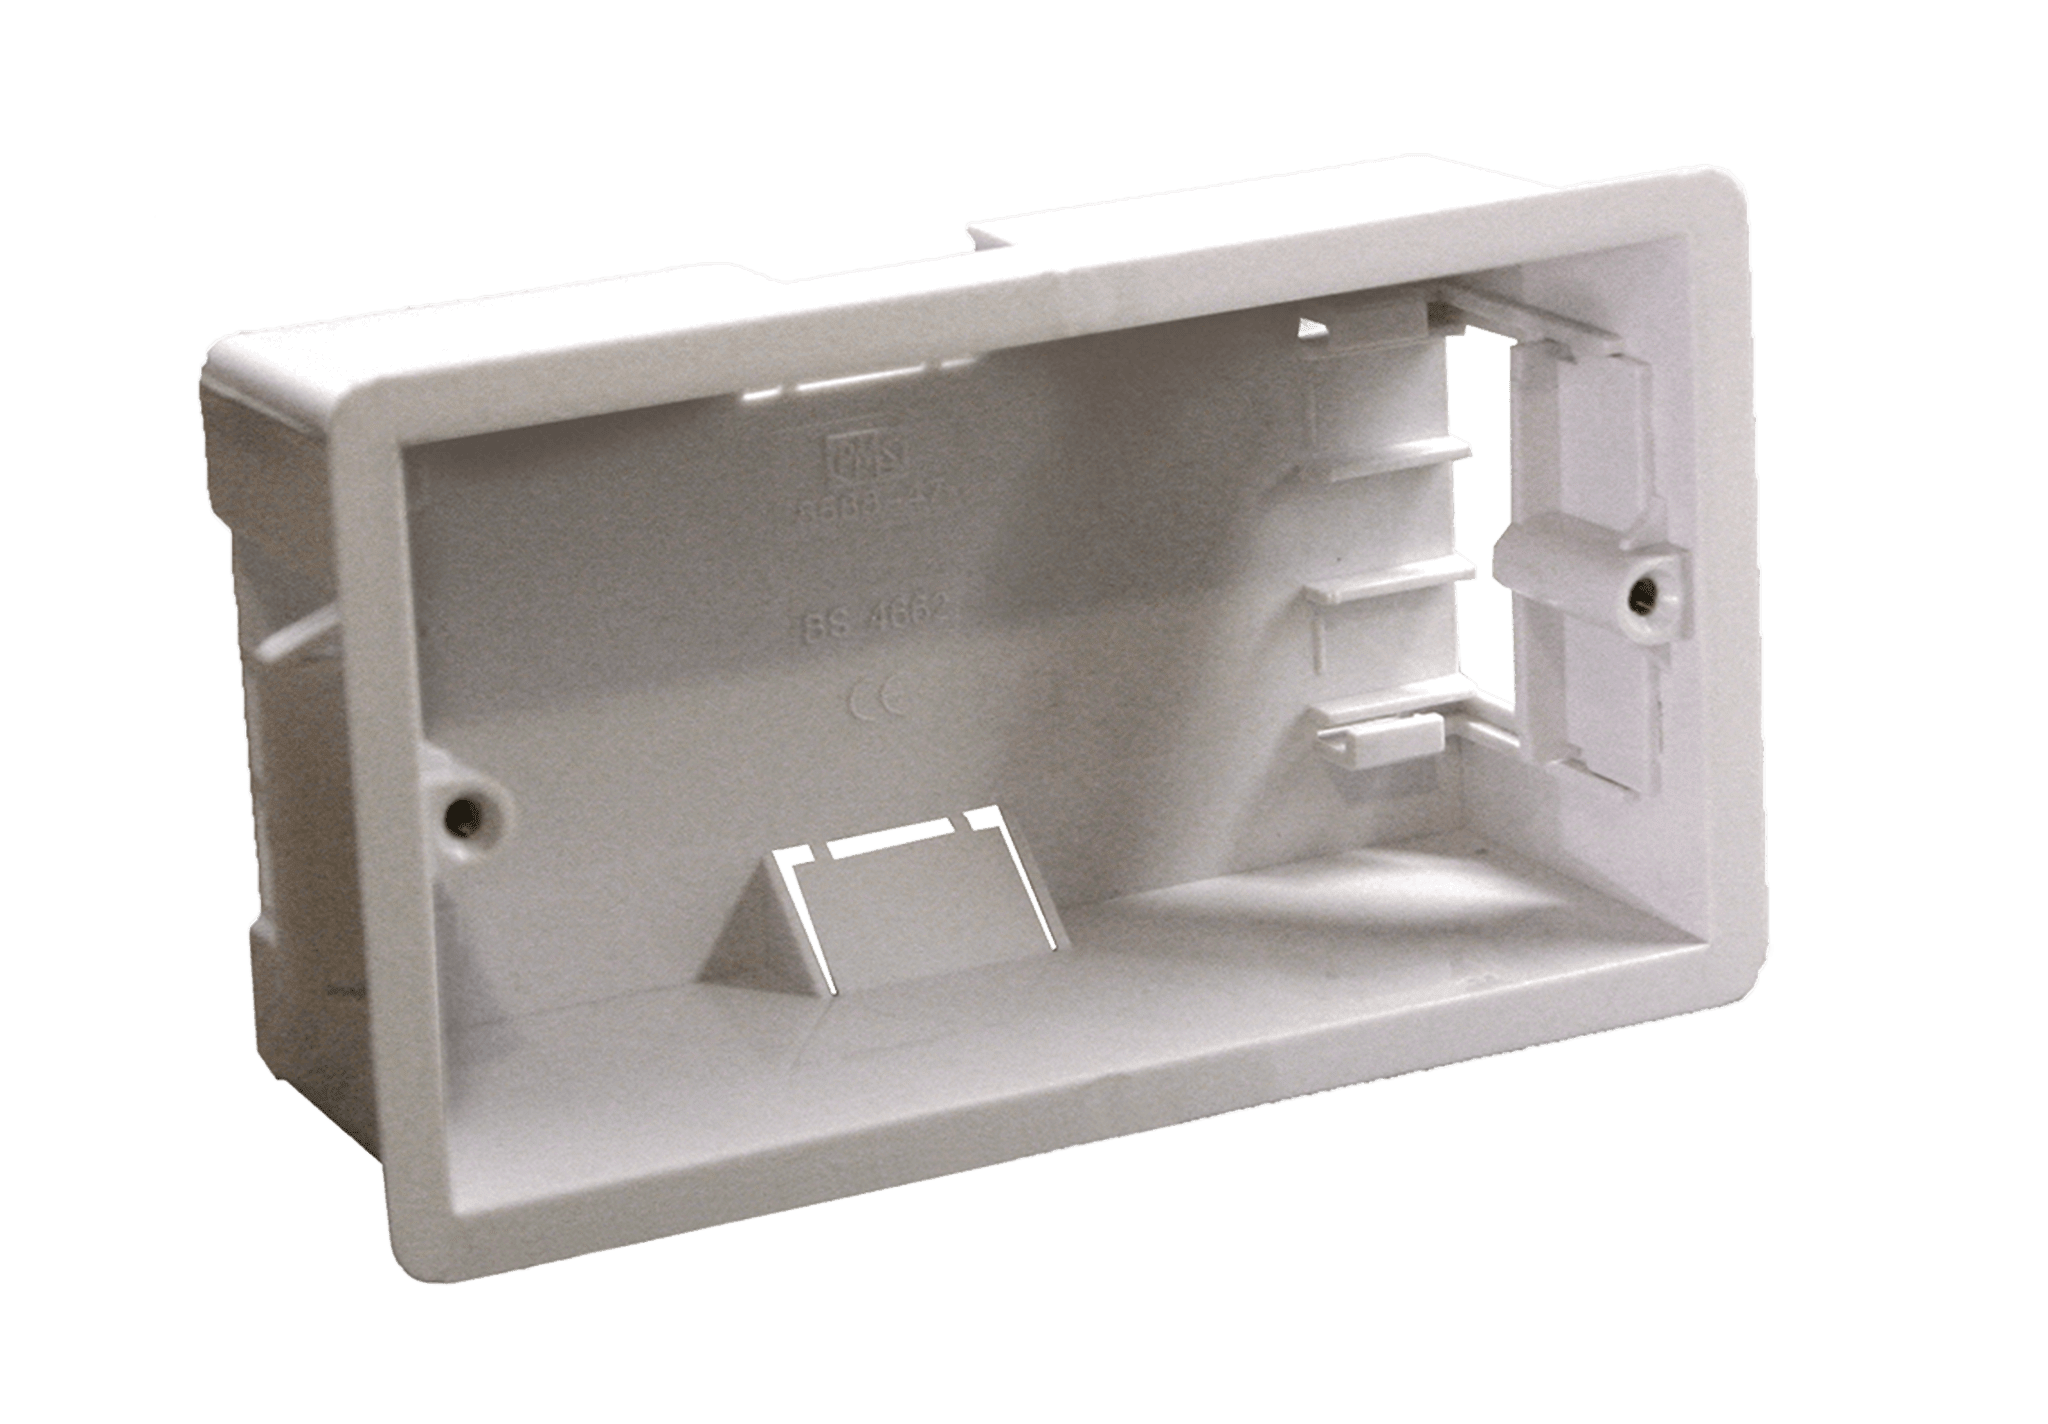 WB50/FG - Flush mount box for AUDAC wallpanel - hollow wall